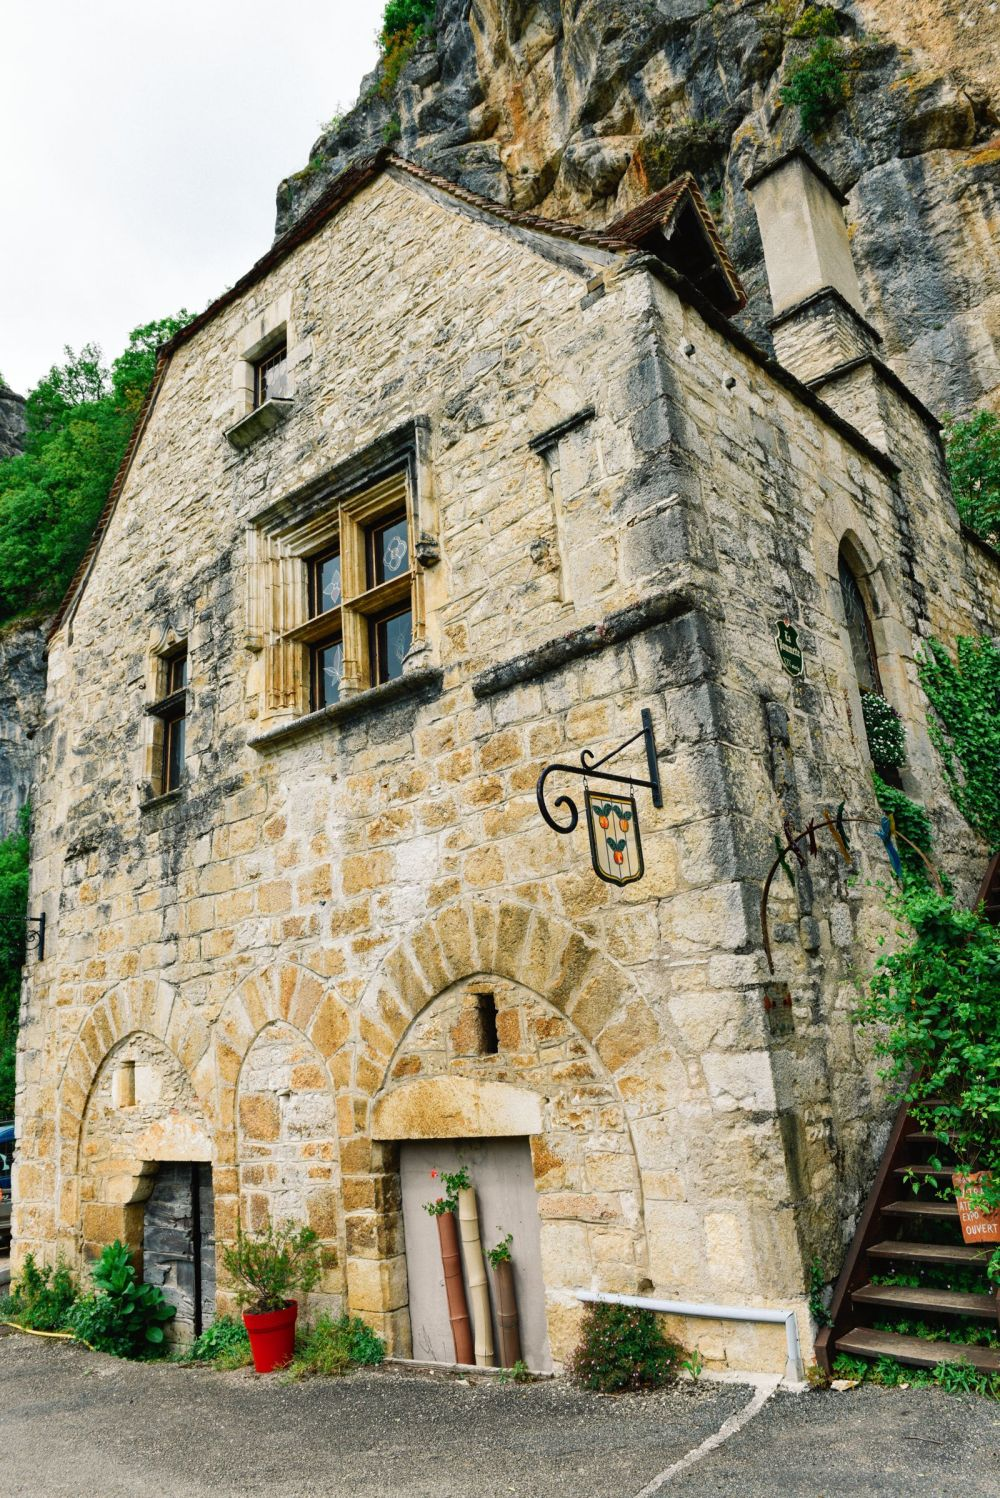 This Is The Most Dramatic Village In France - Rocamadour (52)